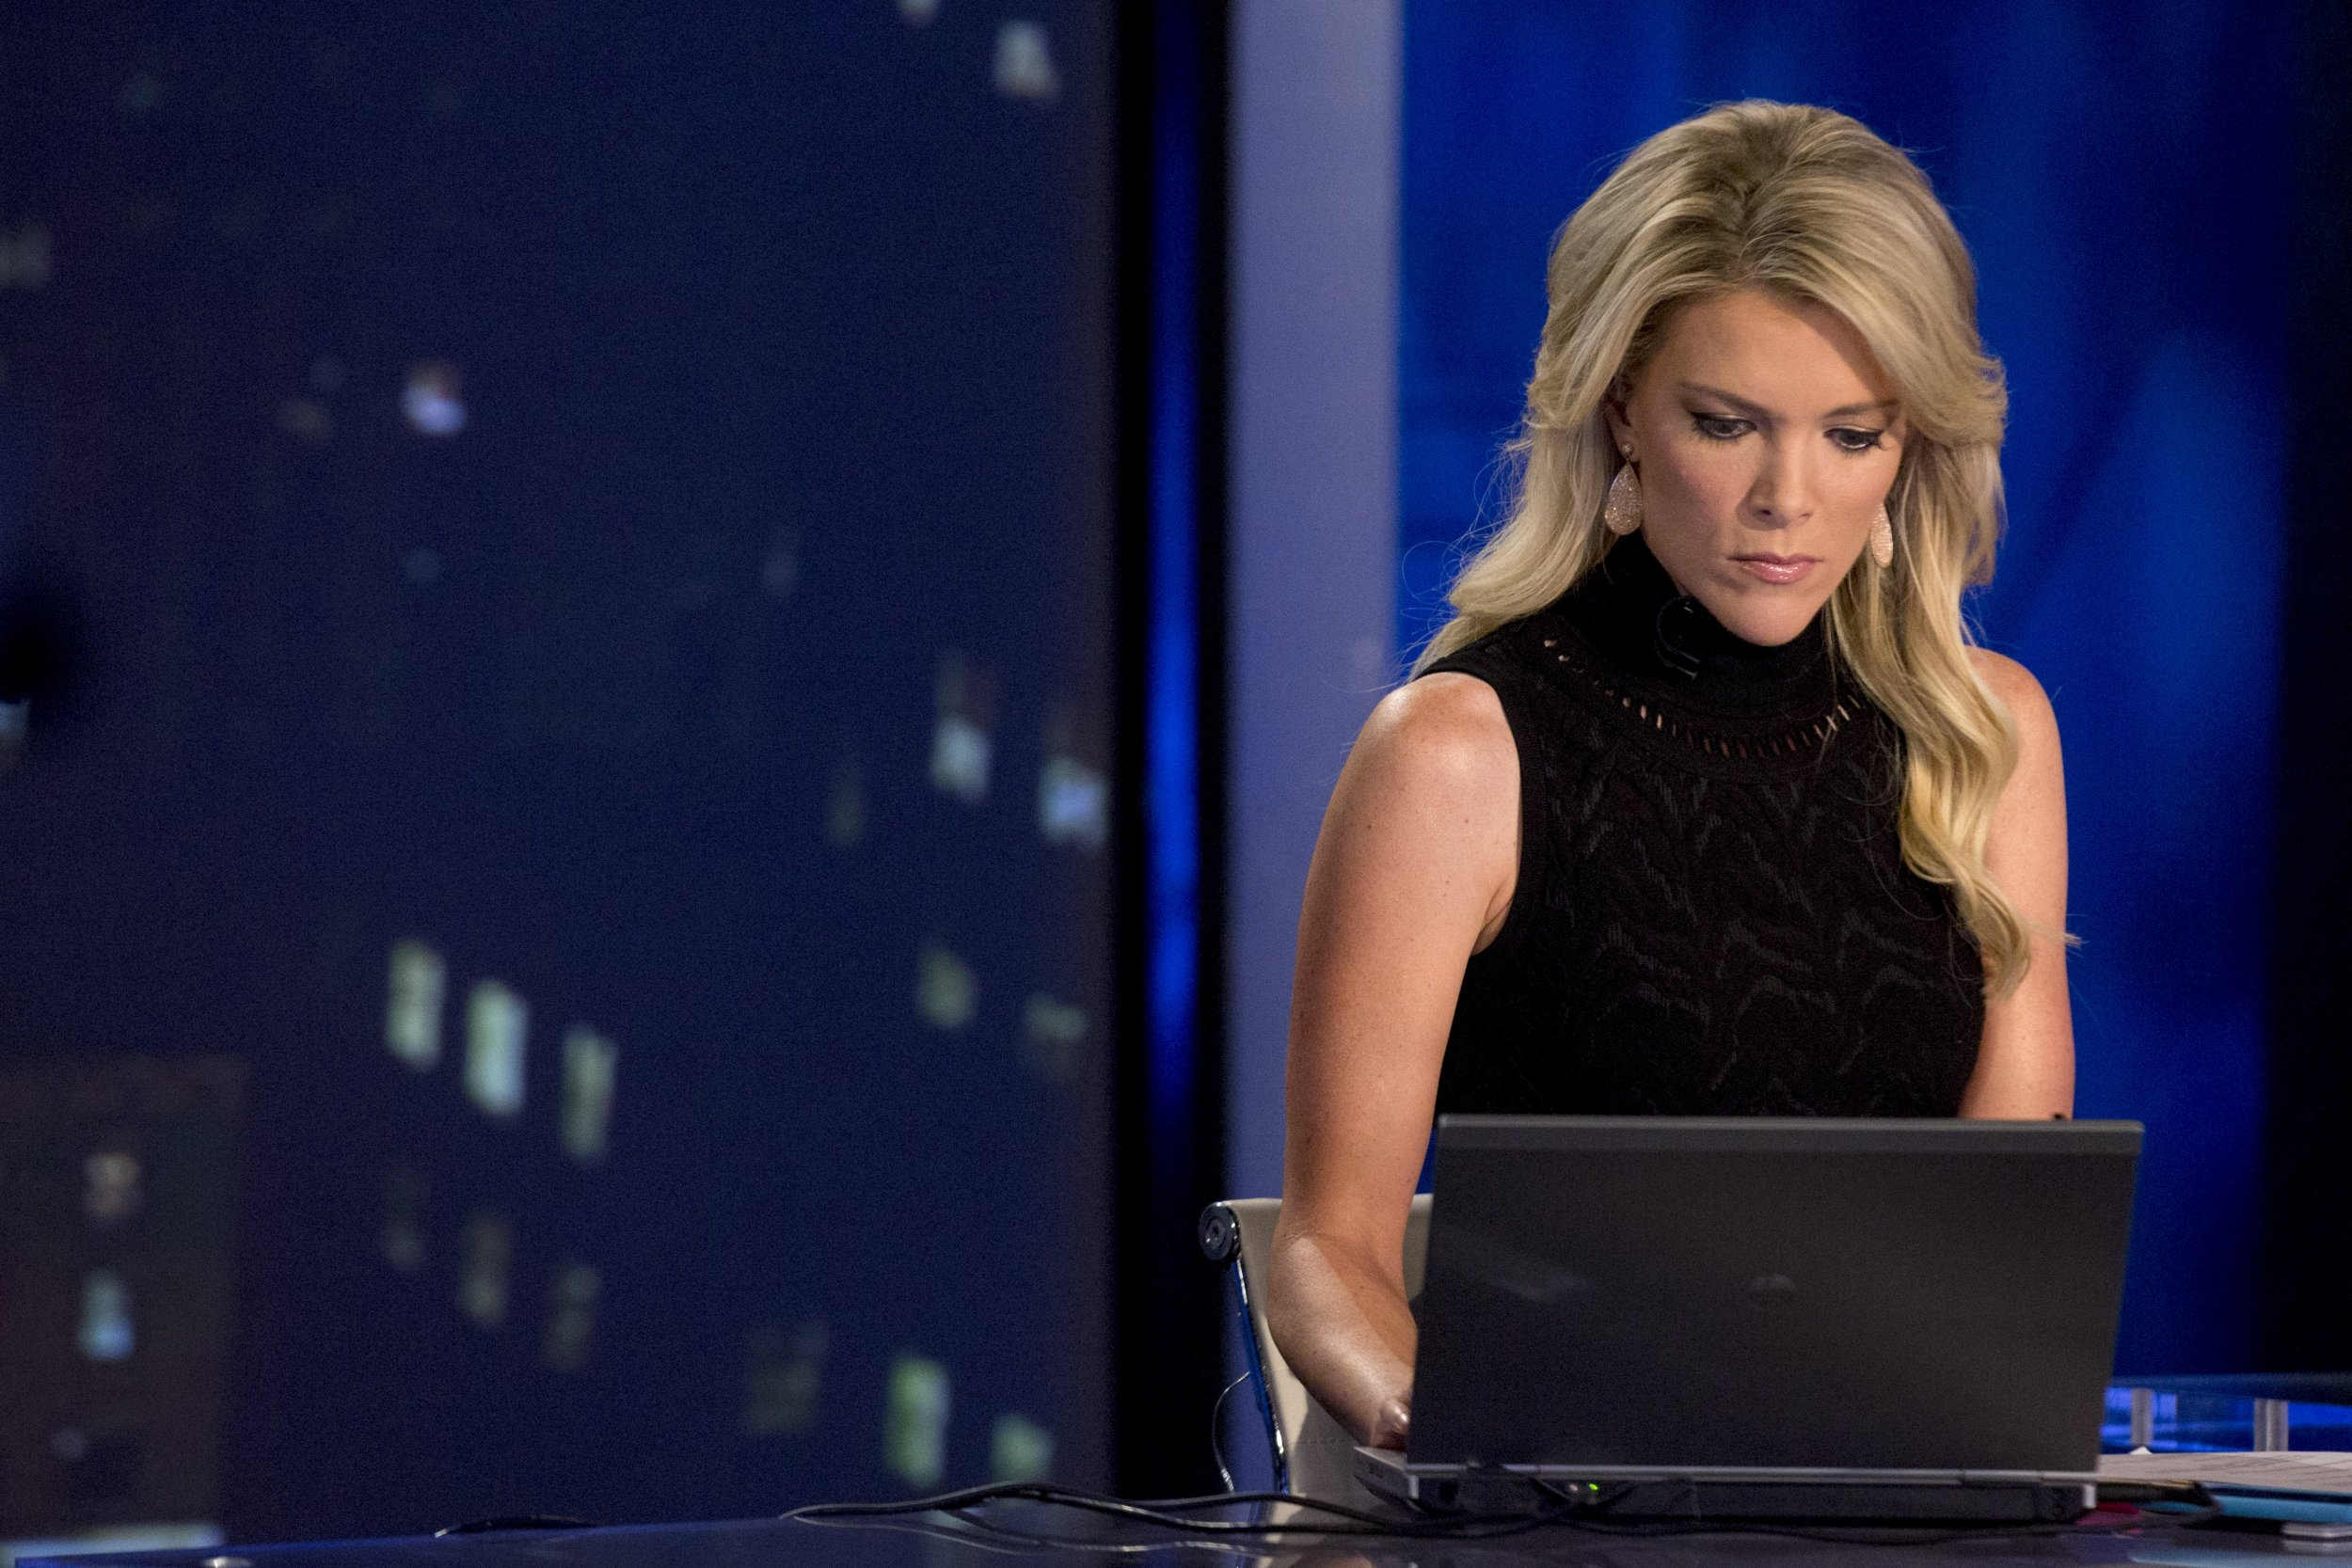 NBC Normalizing Alex Jones's Fake News With Megyn Kelly ...